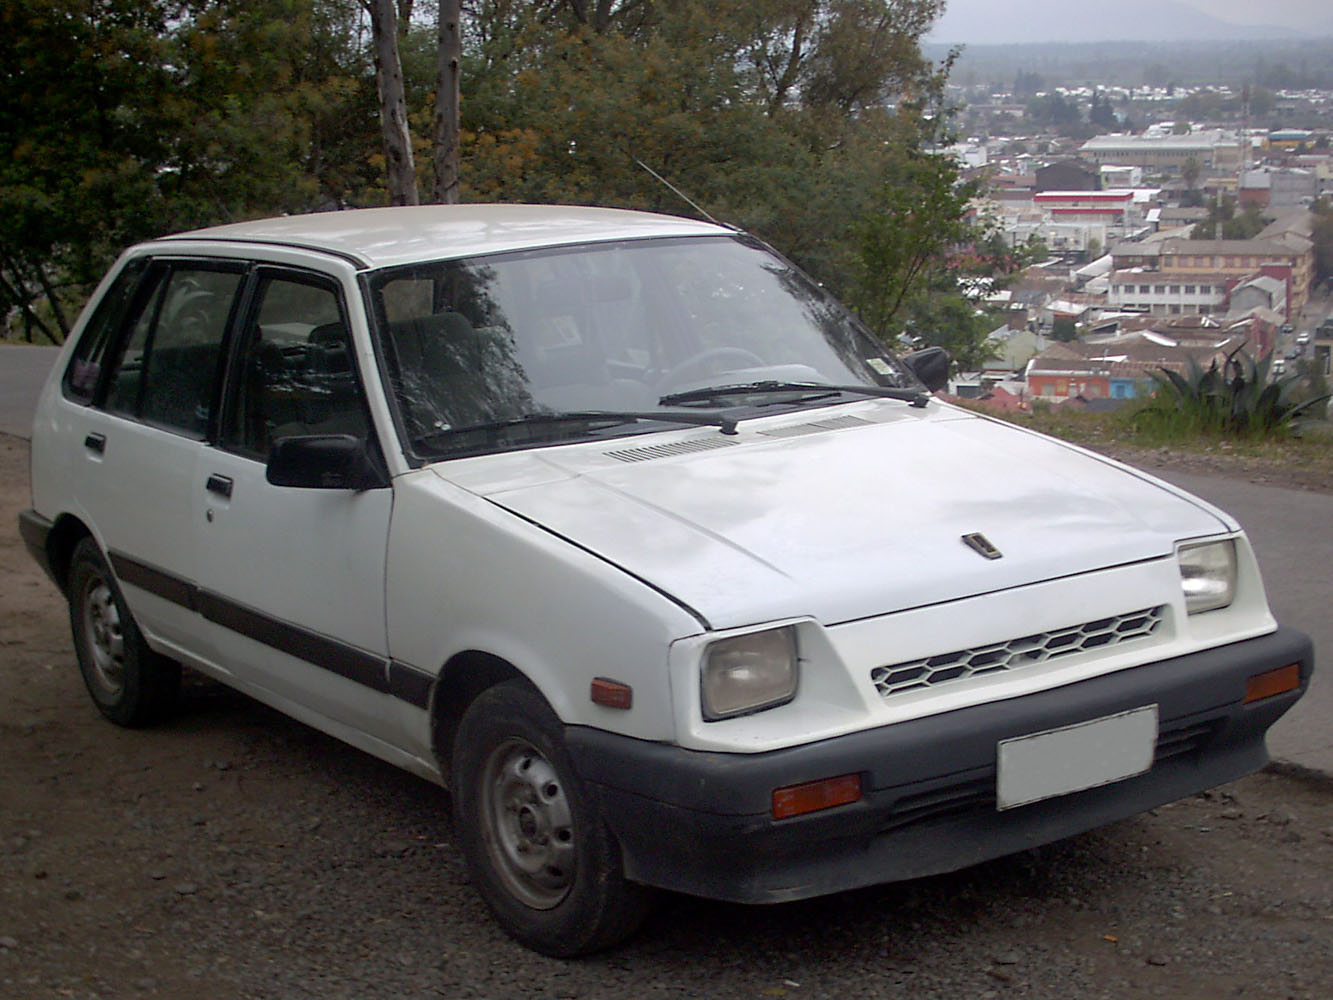 Suzuki Sa310 Amazing Photo On Collection Of Cars Gn400 Wiring Diagram 1